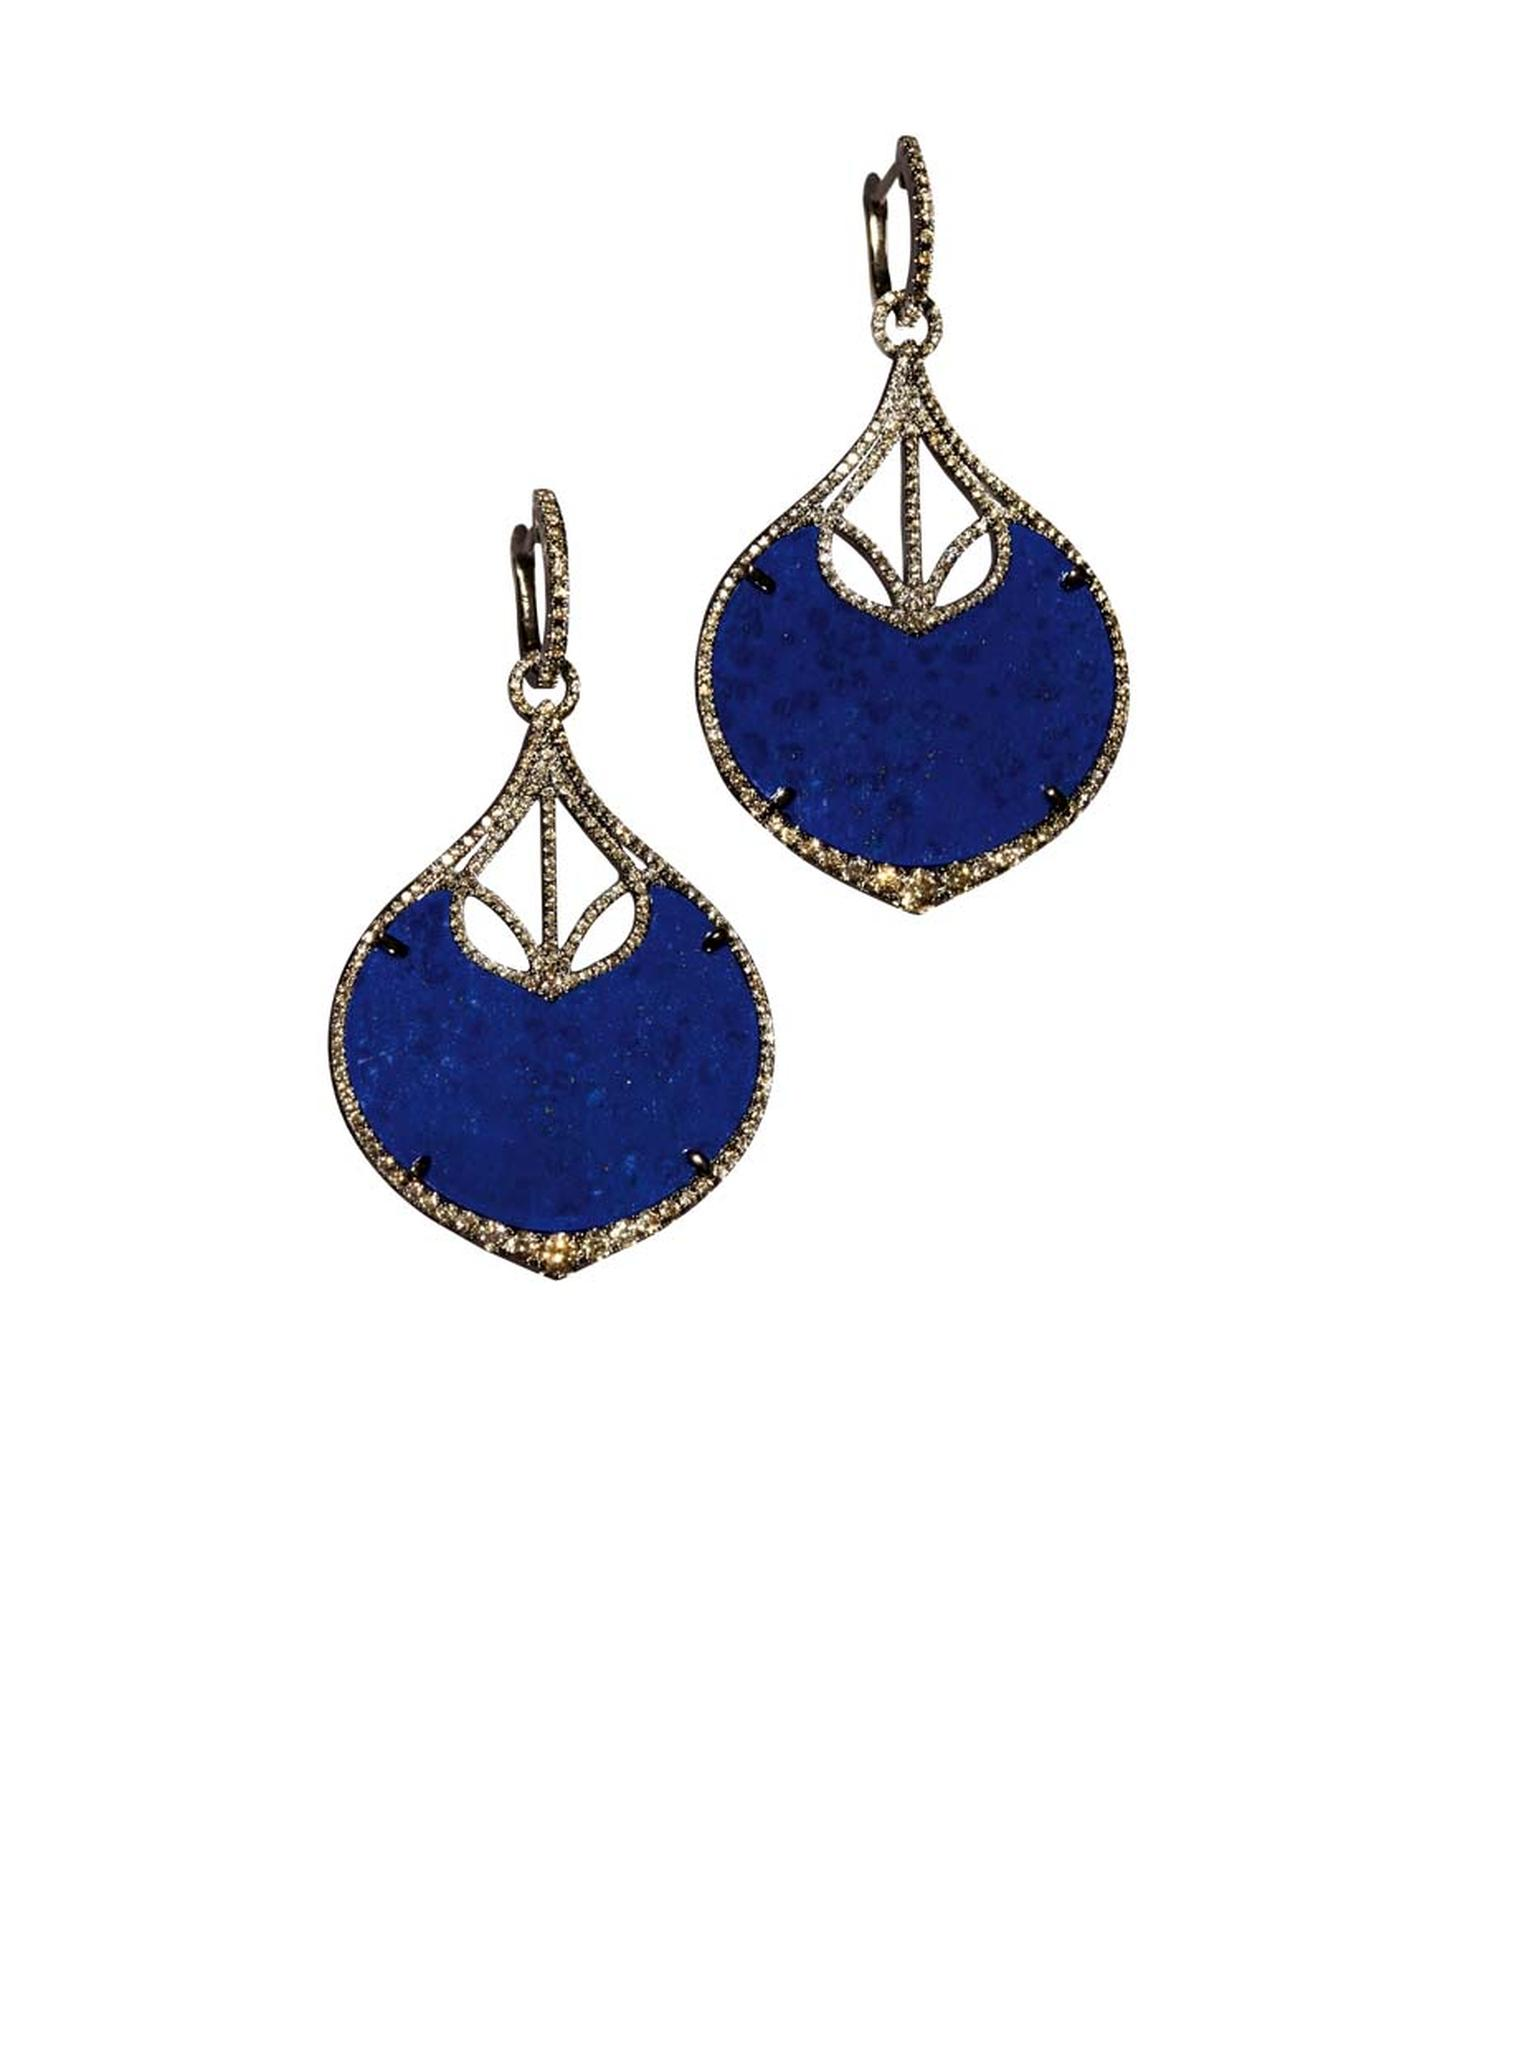 Annoushka Cloud Nine Nocturnal earrings with delicate diamonds set around voluptuous lapis lazuli drops (£6,900).